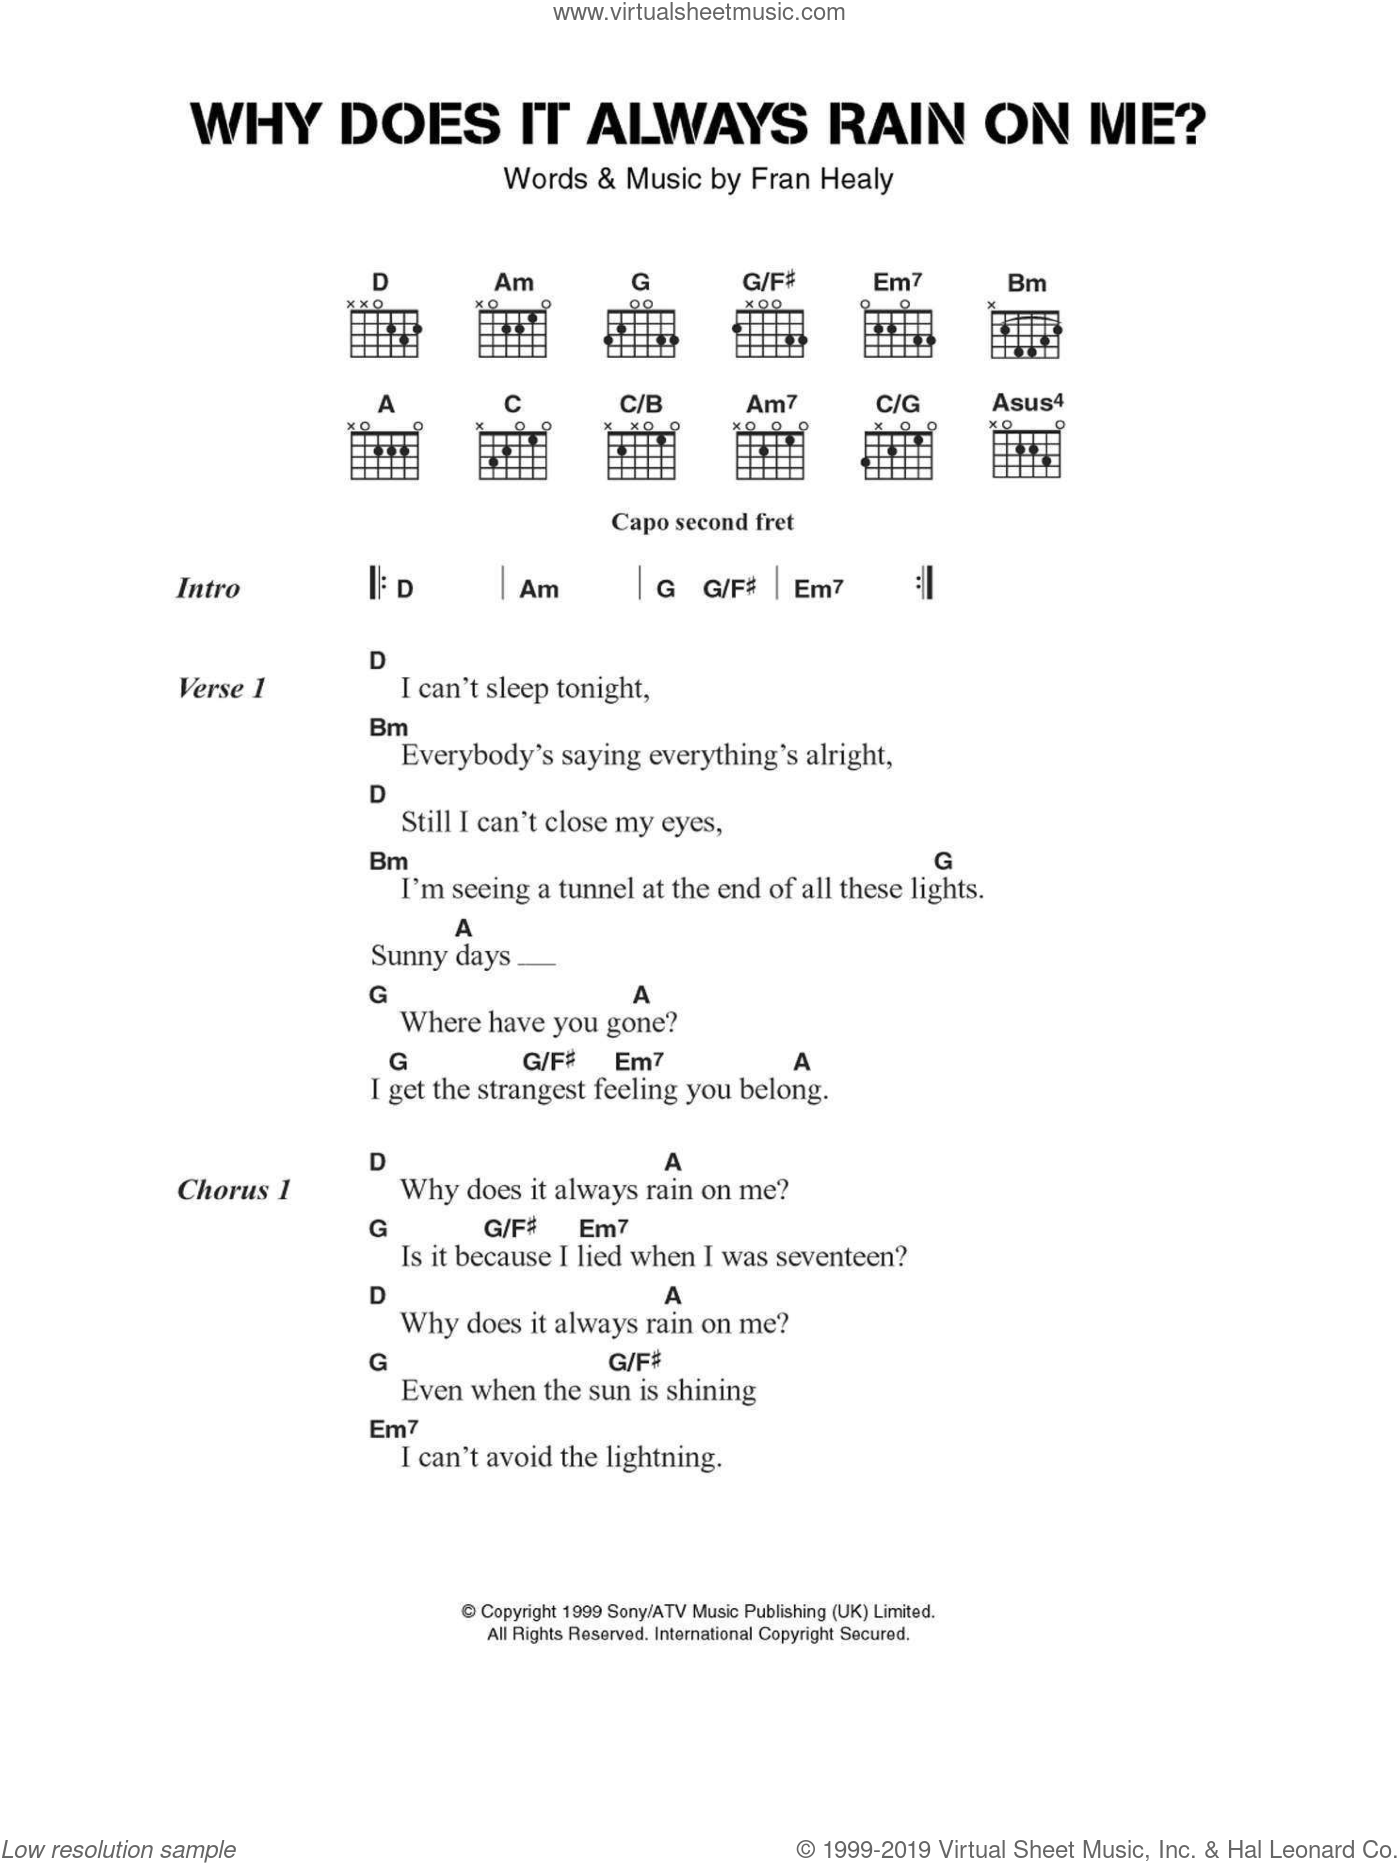 Why Does It Always Rain On Me? sheet music for guitar (chords) by Merle Travis and Fran Healy, intermediate skill level